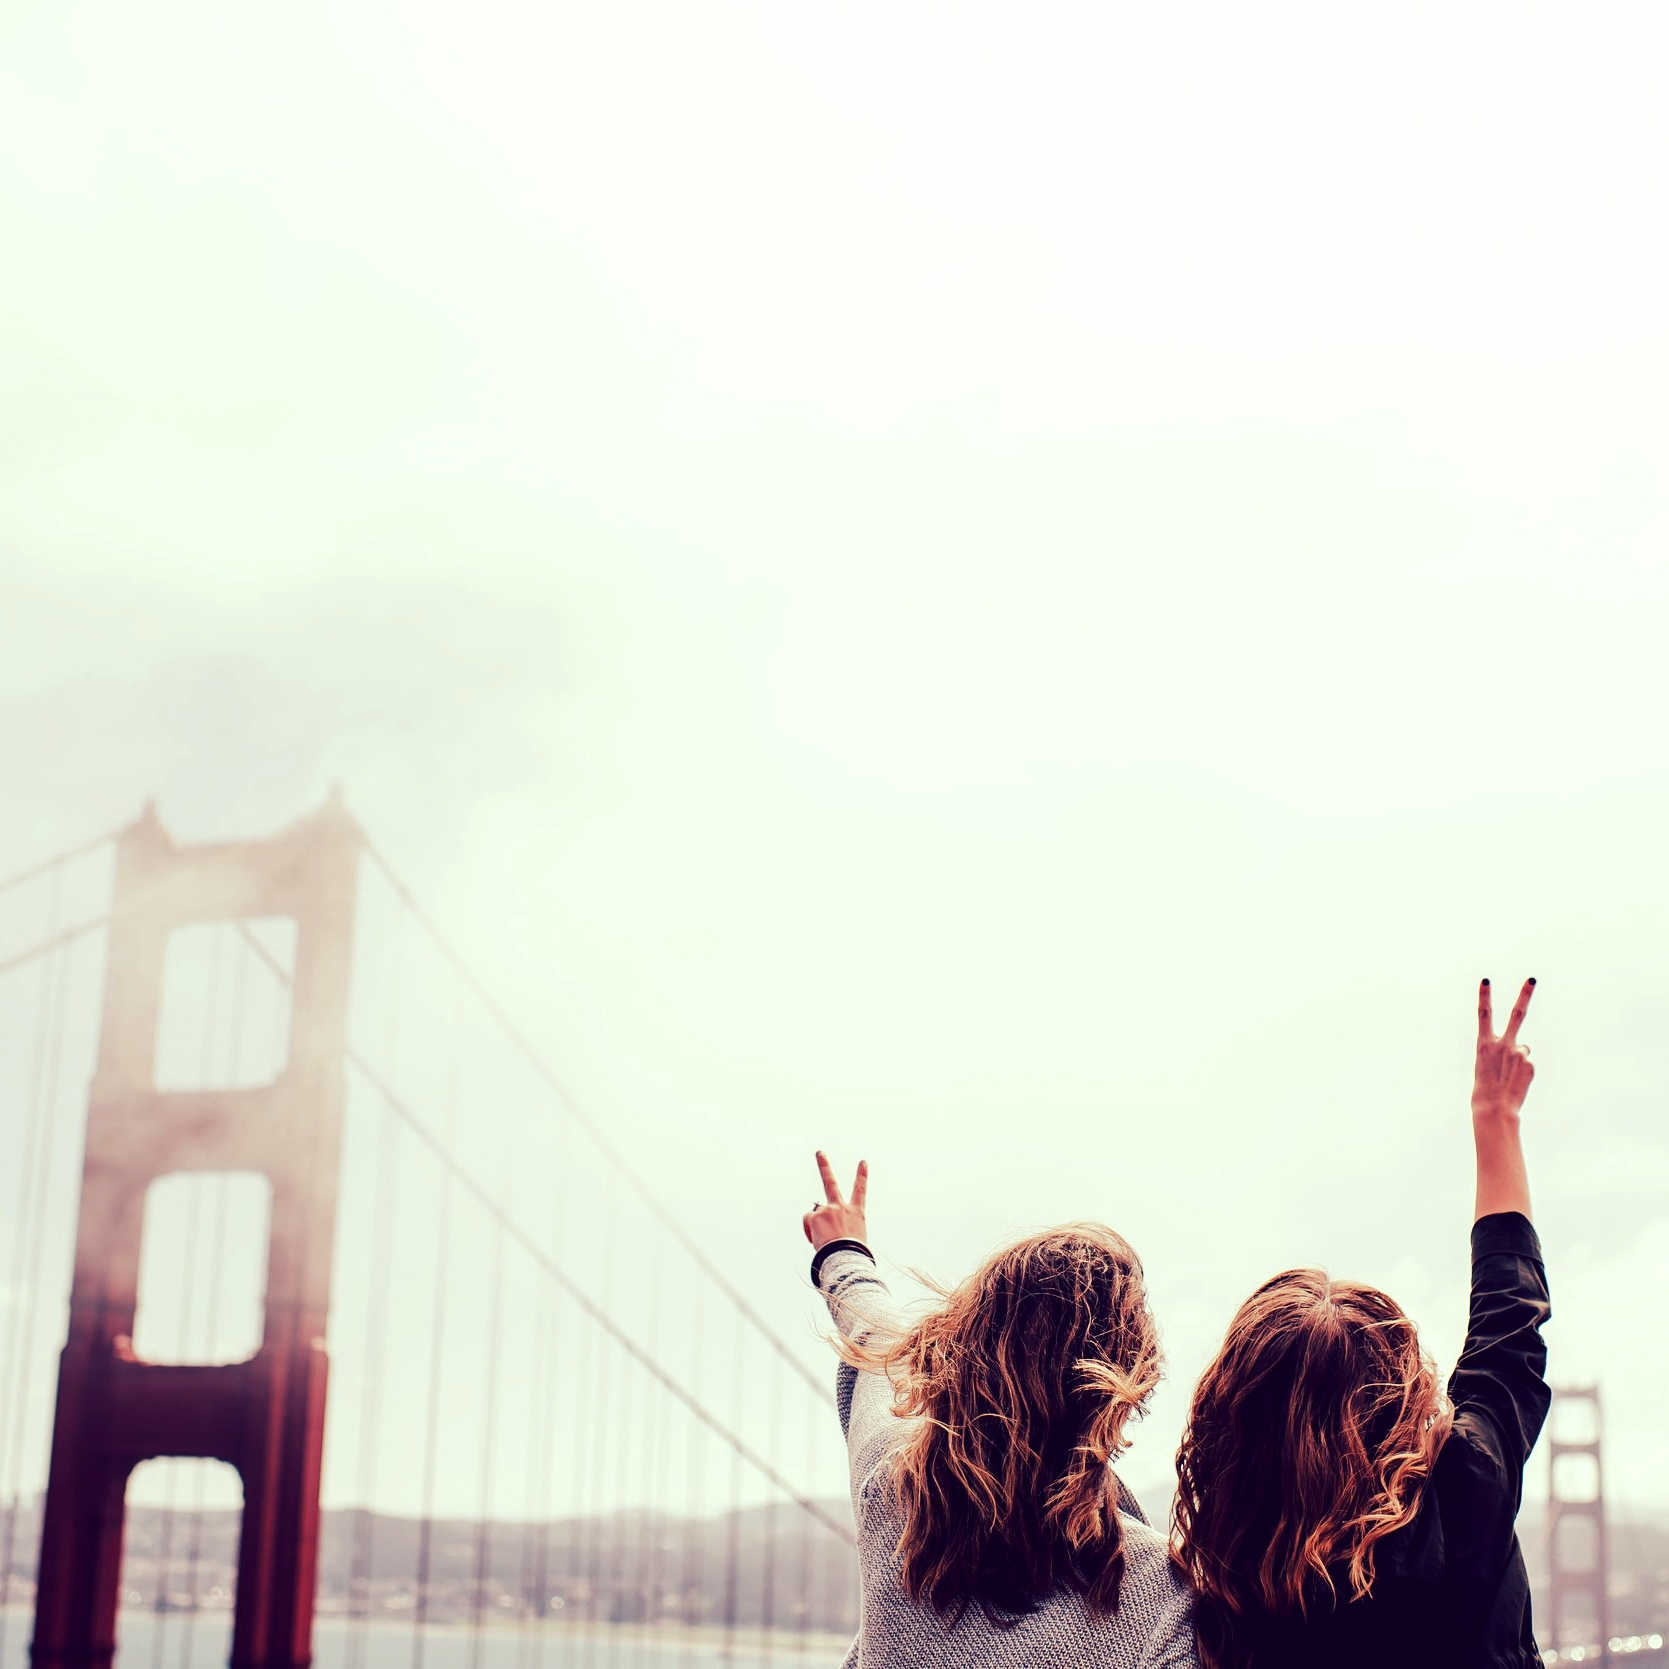 Women Thriving at Golden Gate Bridge | Total Thrive